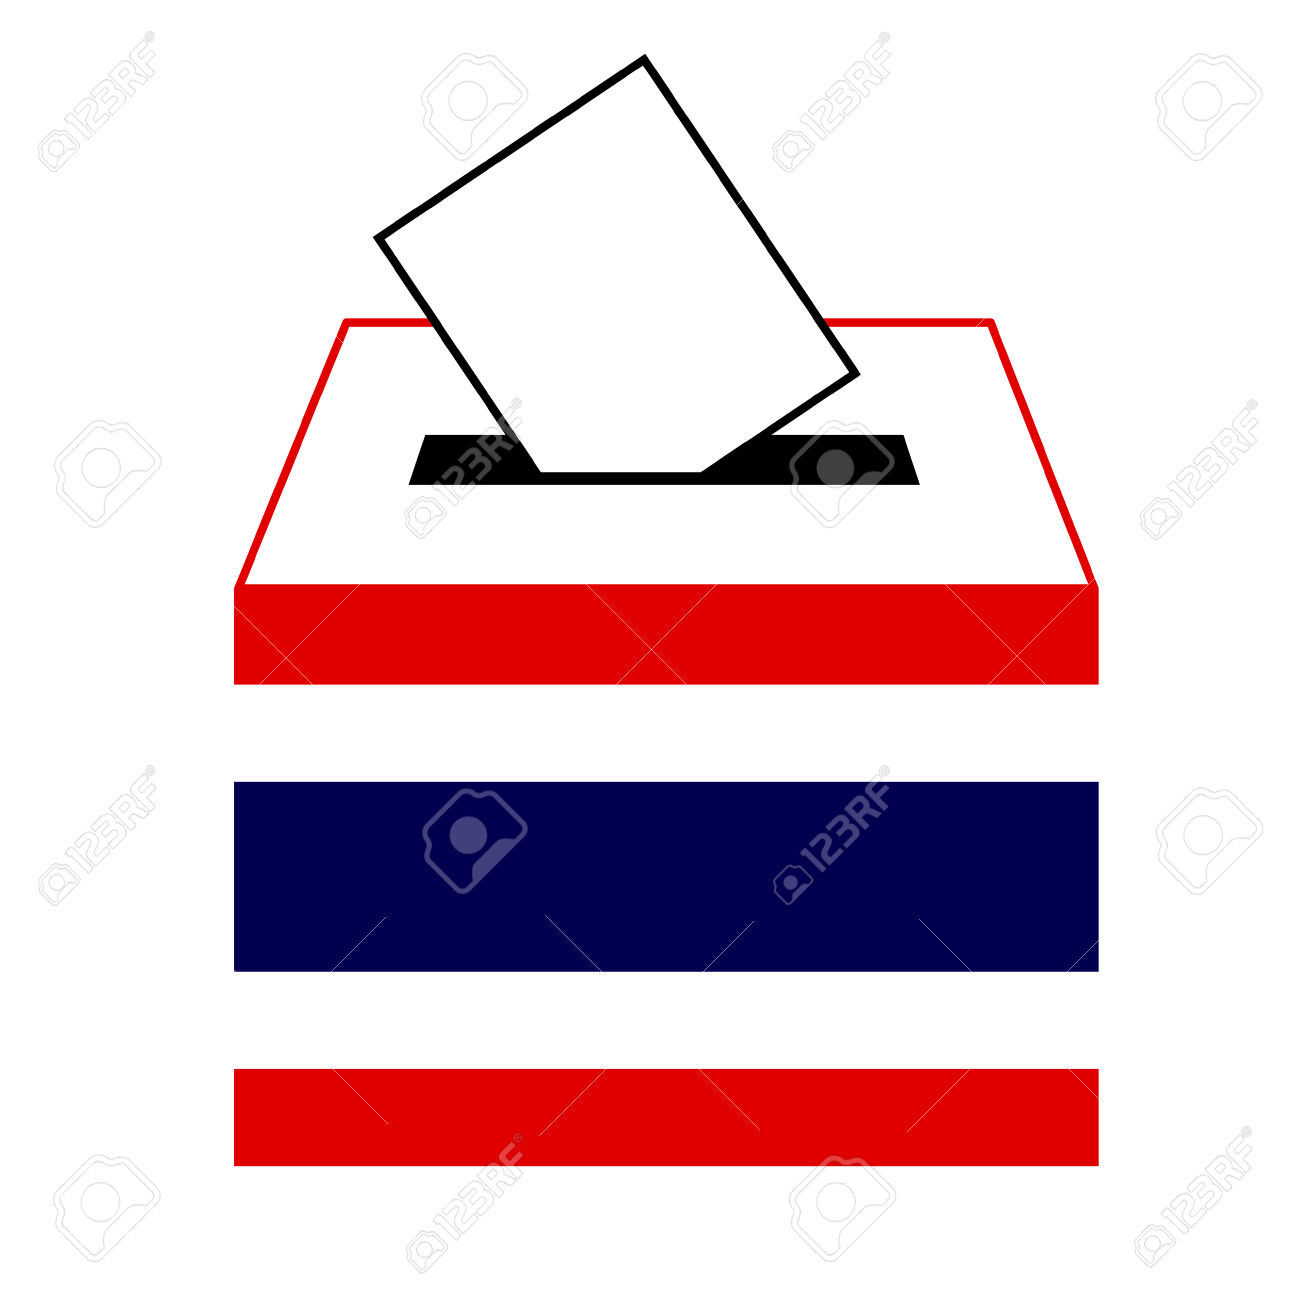 Box clipart icon. Voting icons